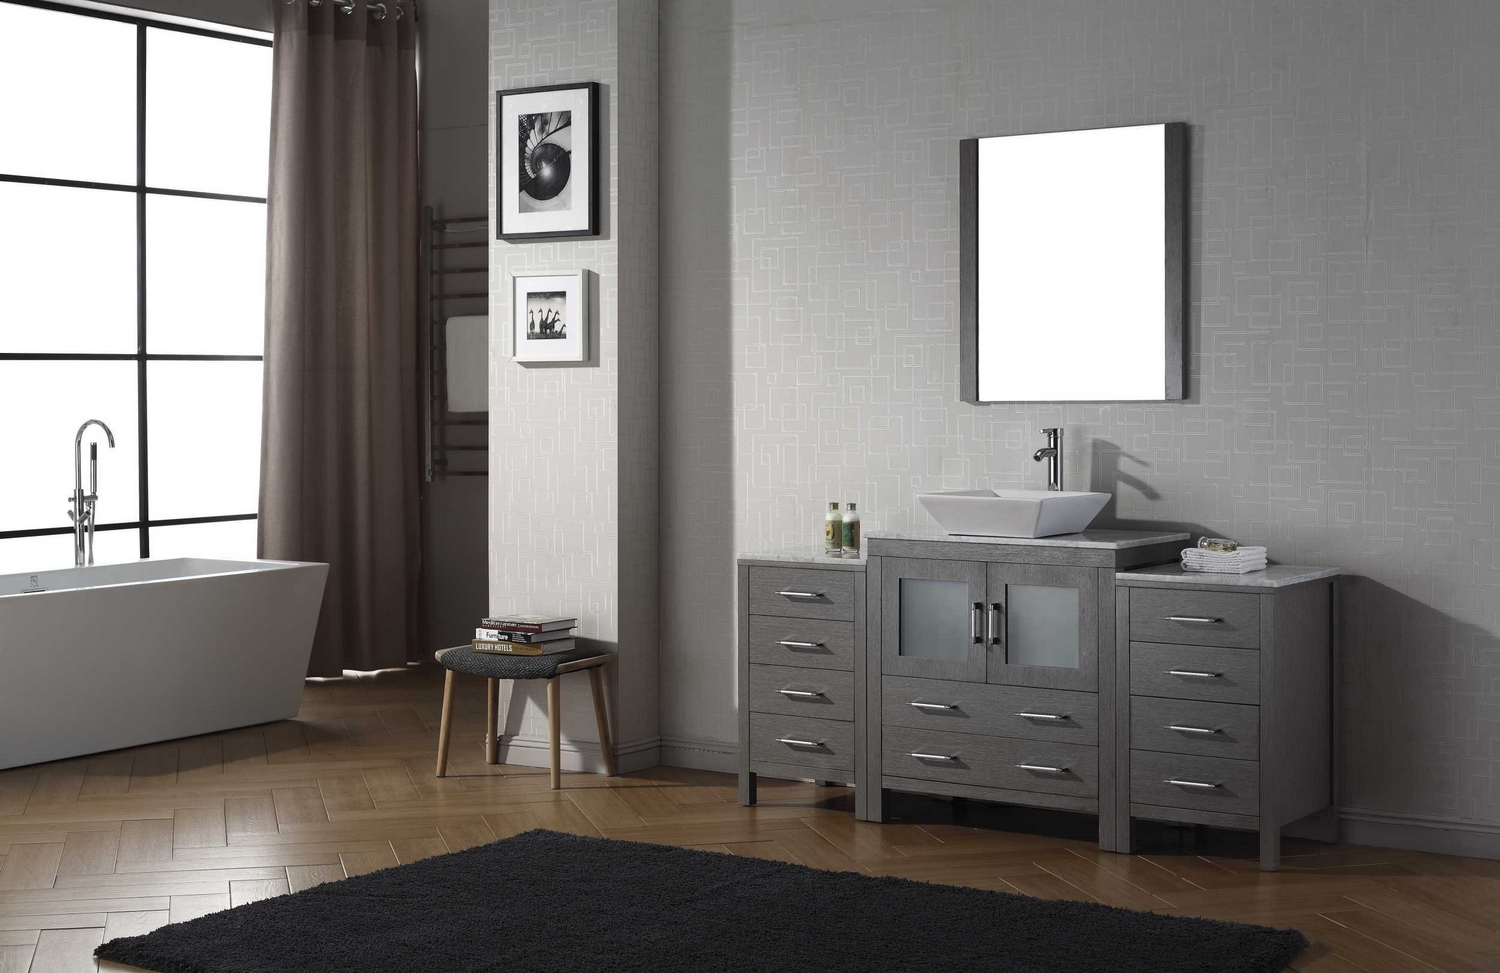 bathroom vanities kansas city unfinished bathroom vanity cabinet in kansas city deebonk - Bathroom Cabinets Kansas City